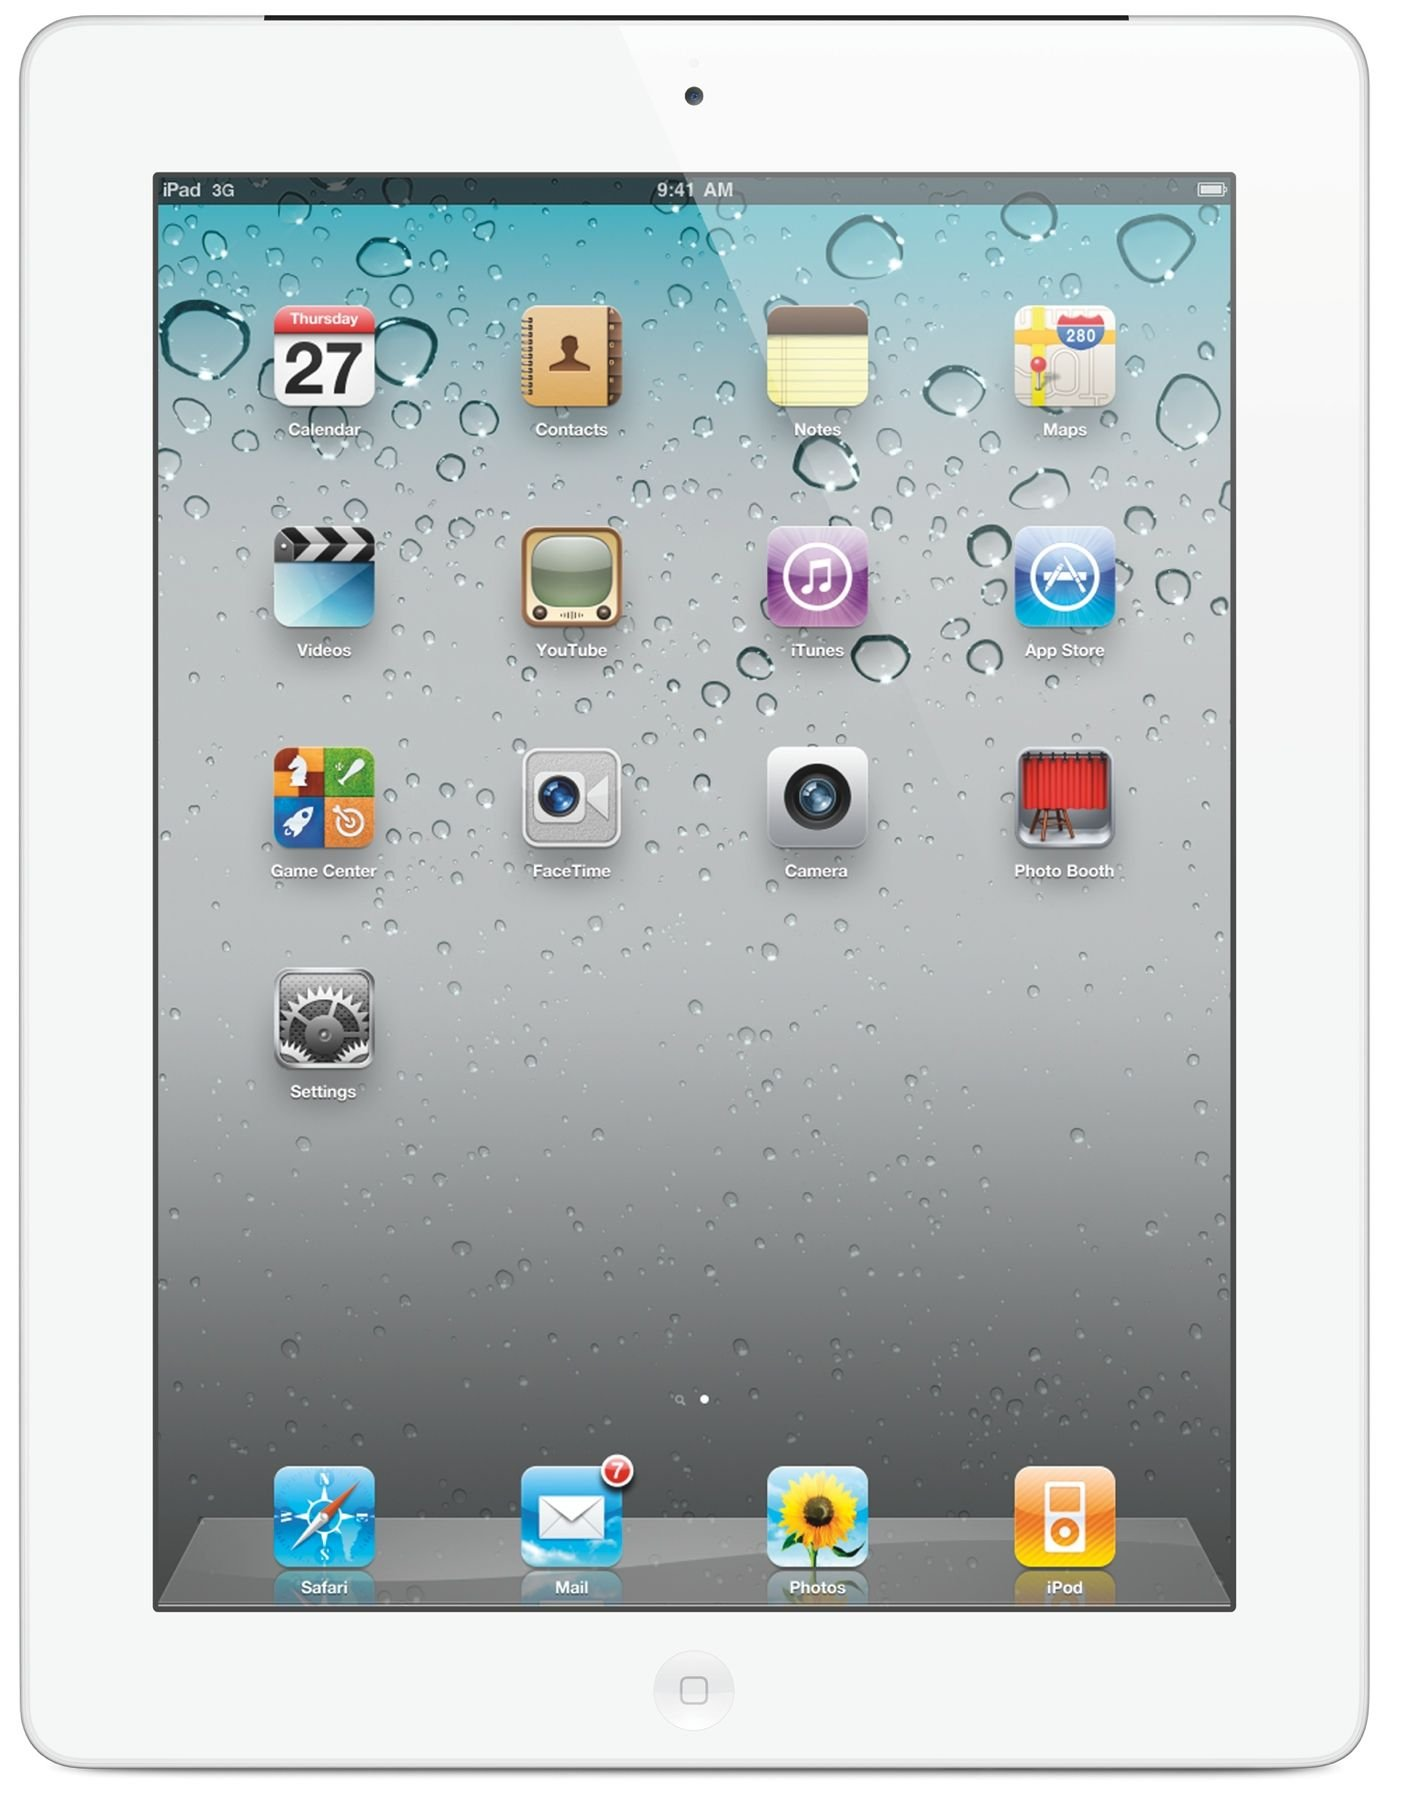 Apple iPad 3rd Generation 9.7'' Tablet - 16GB, White, WiFi + Cellular, Unlocked GSM (Certified Refurbished)